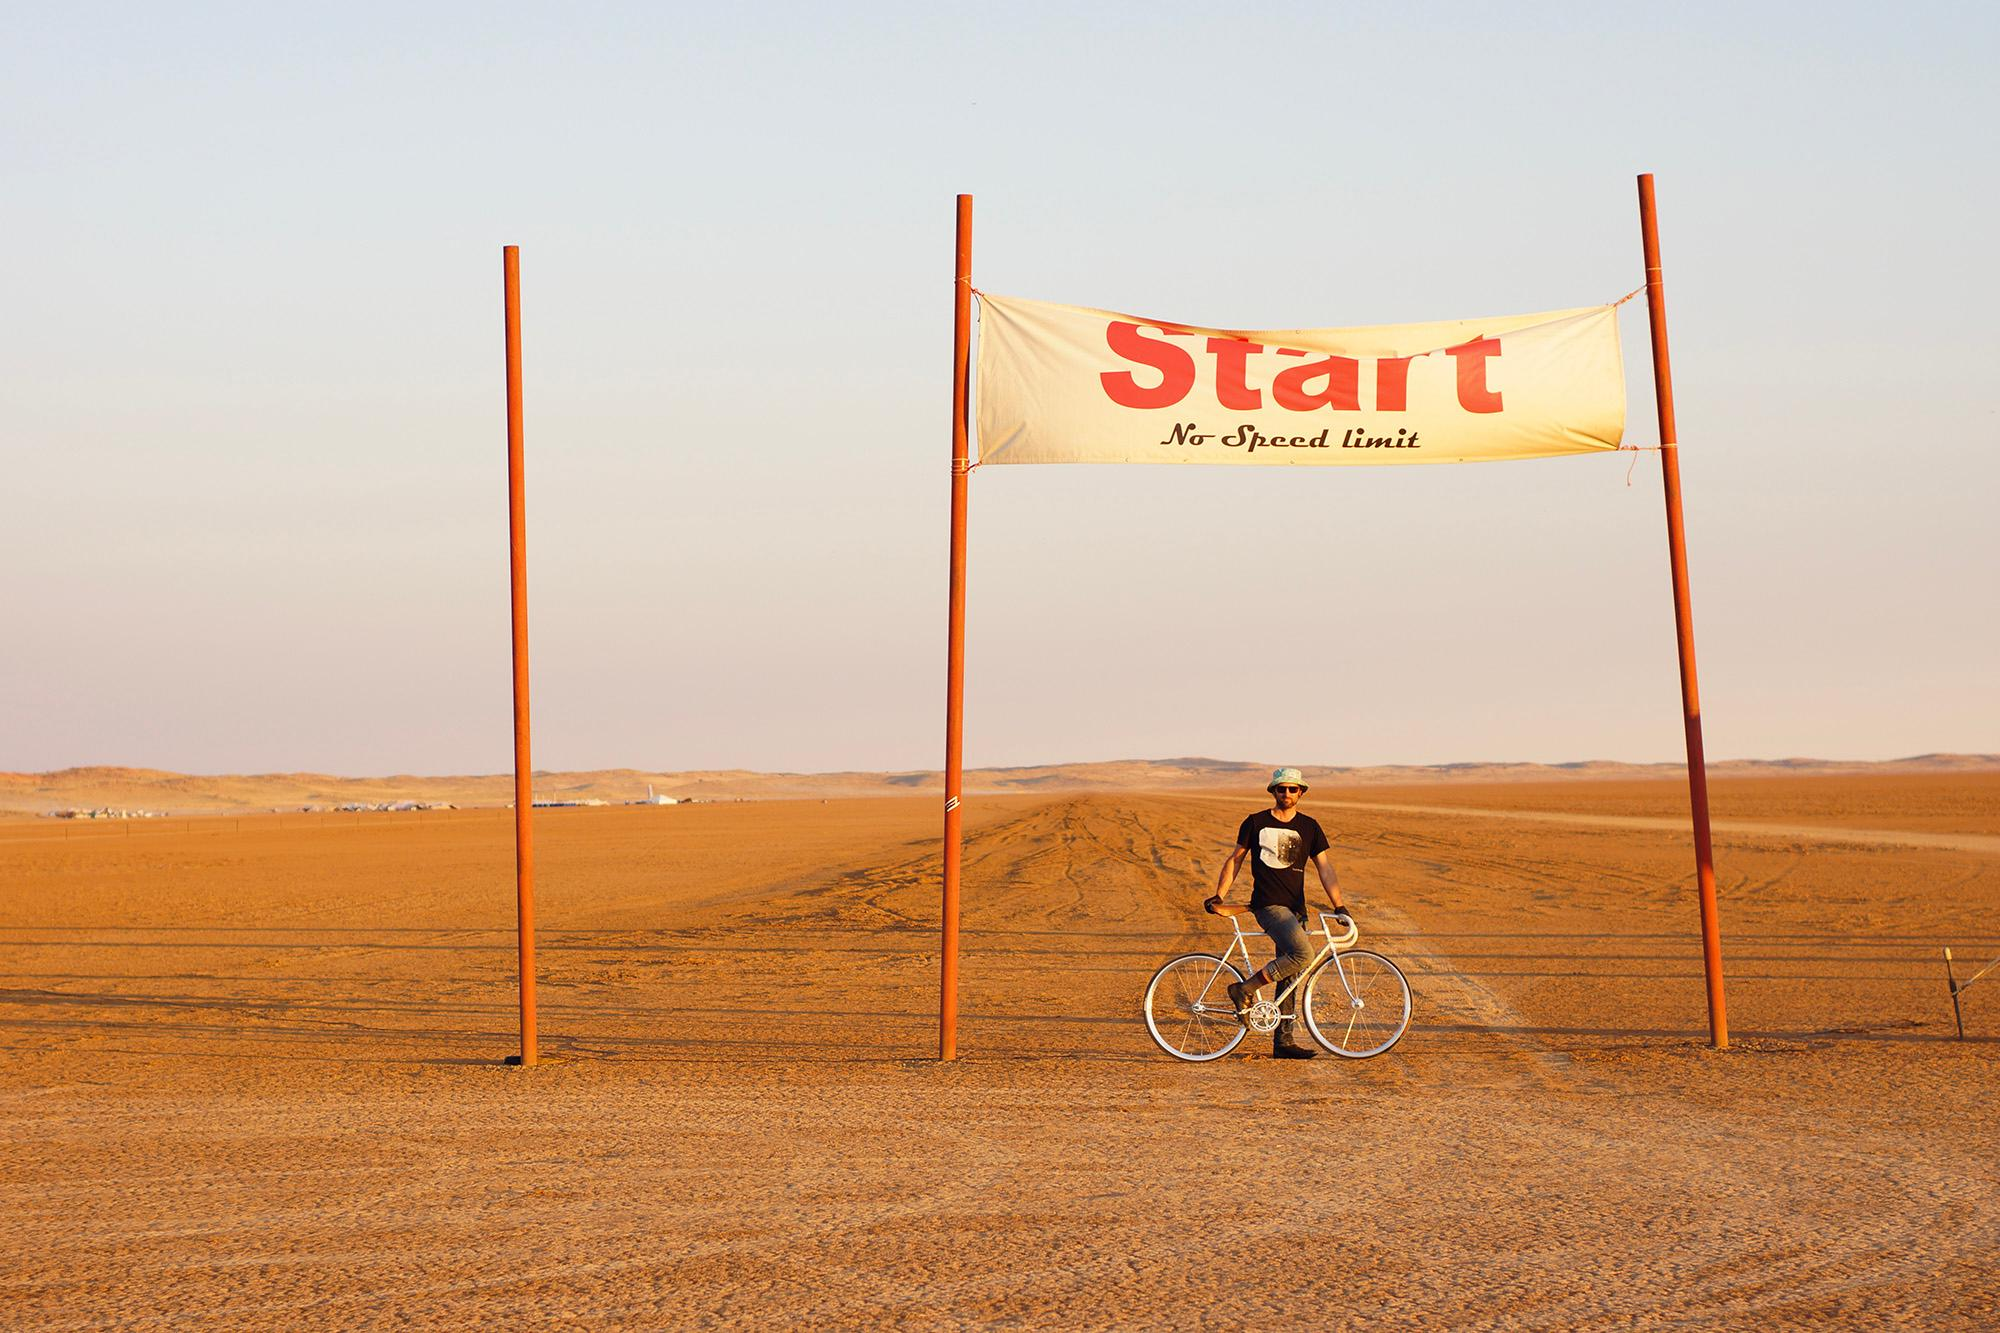 Nic at the 2014 Speedweek start line, with the Hakskeenpan base camp in the background.